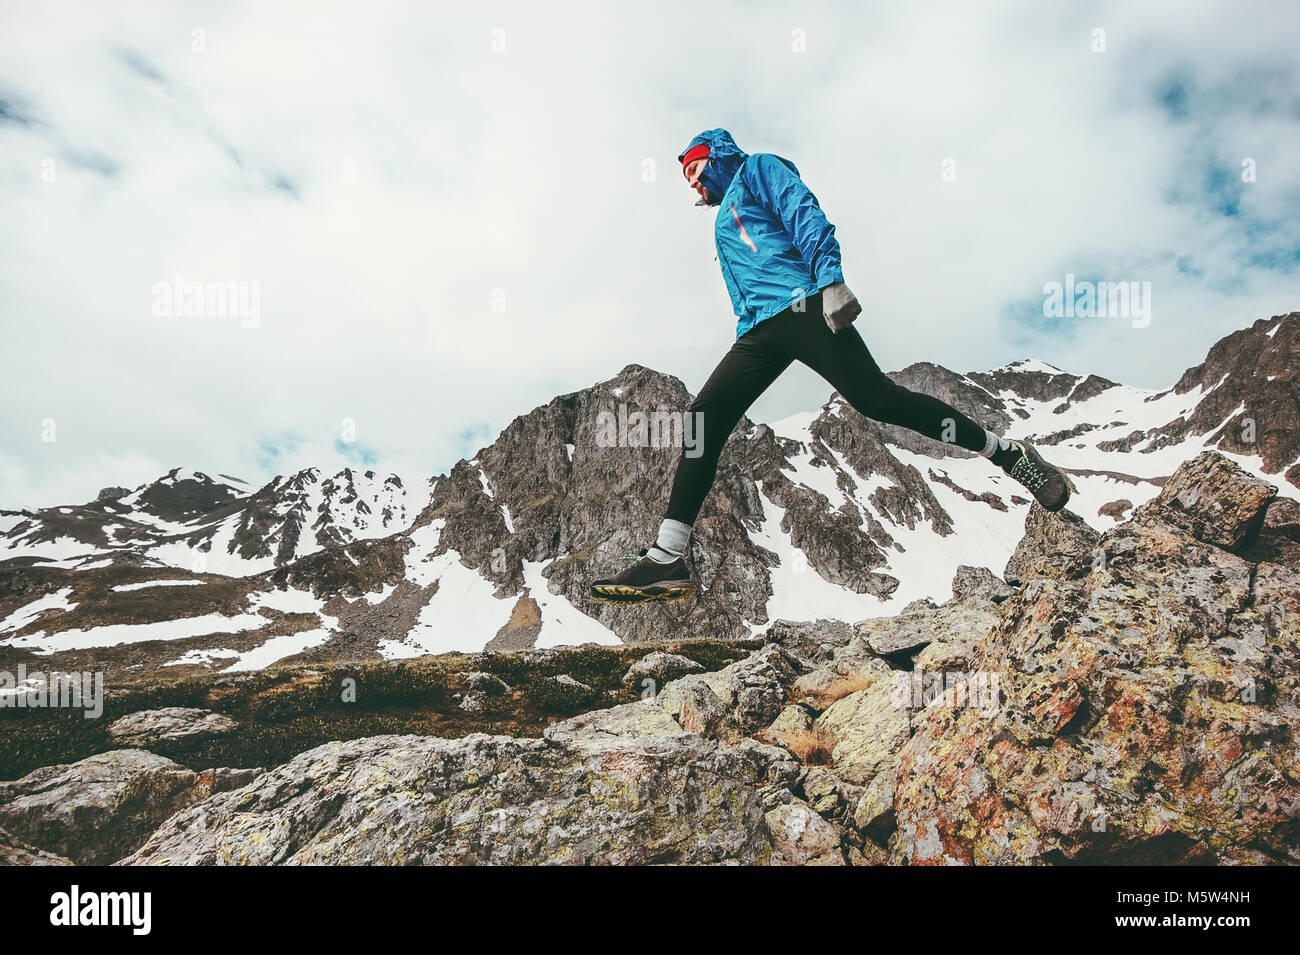 Active Man running in mountains Travel adventure healthy lifestyle concept vacations athletic person skyrunning - Stock Image